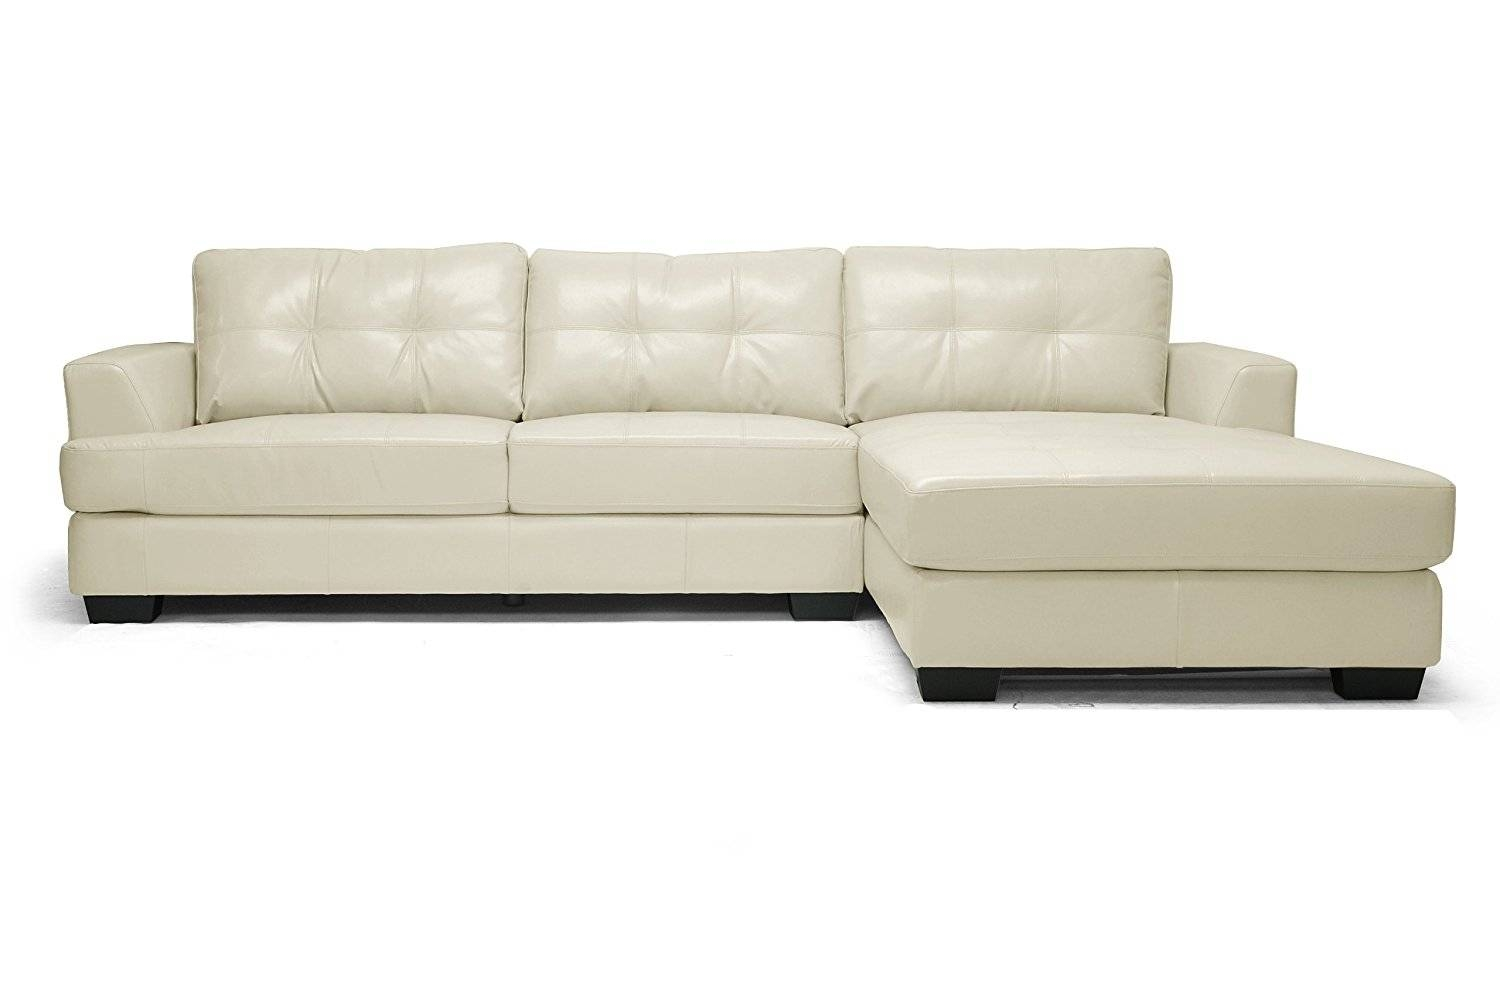 Furniture: Baxton Studio Sectional | Braxton Sectional Sofa for Braxton Sofa (Image 30 of 30)